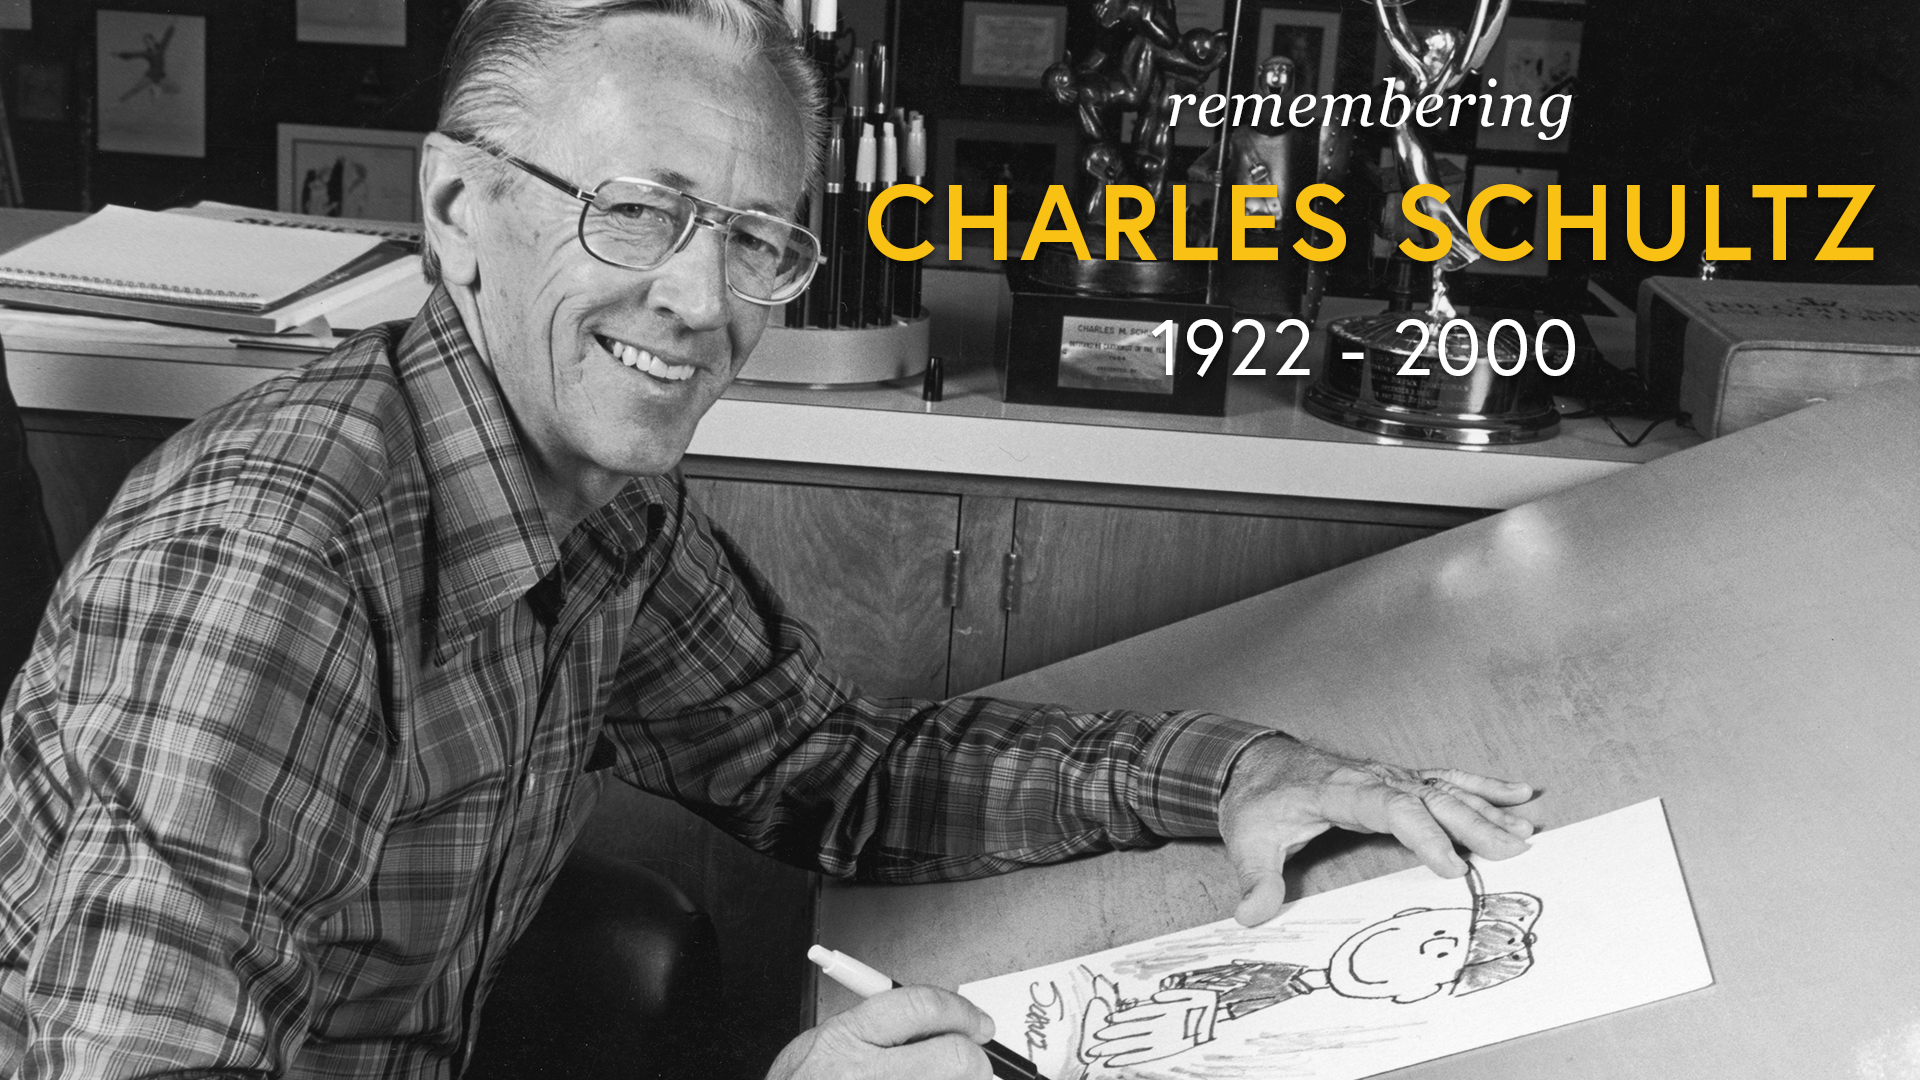 Remembering Charles Schultz screen capture